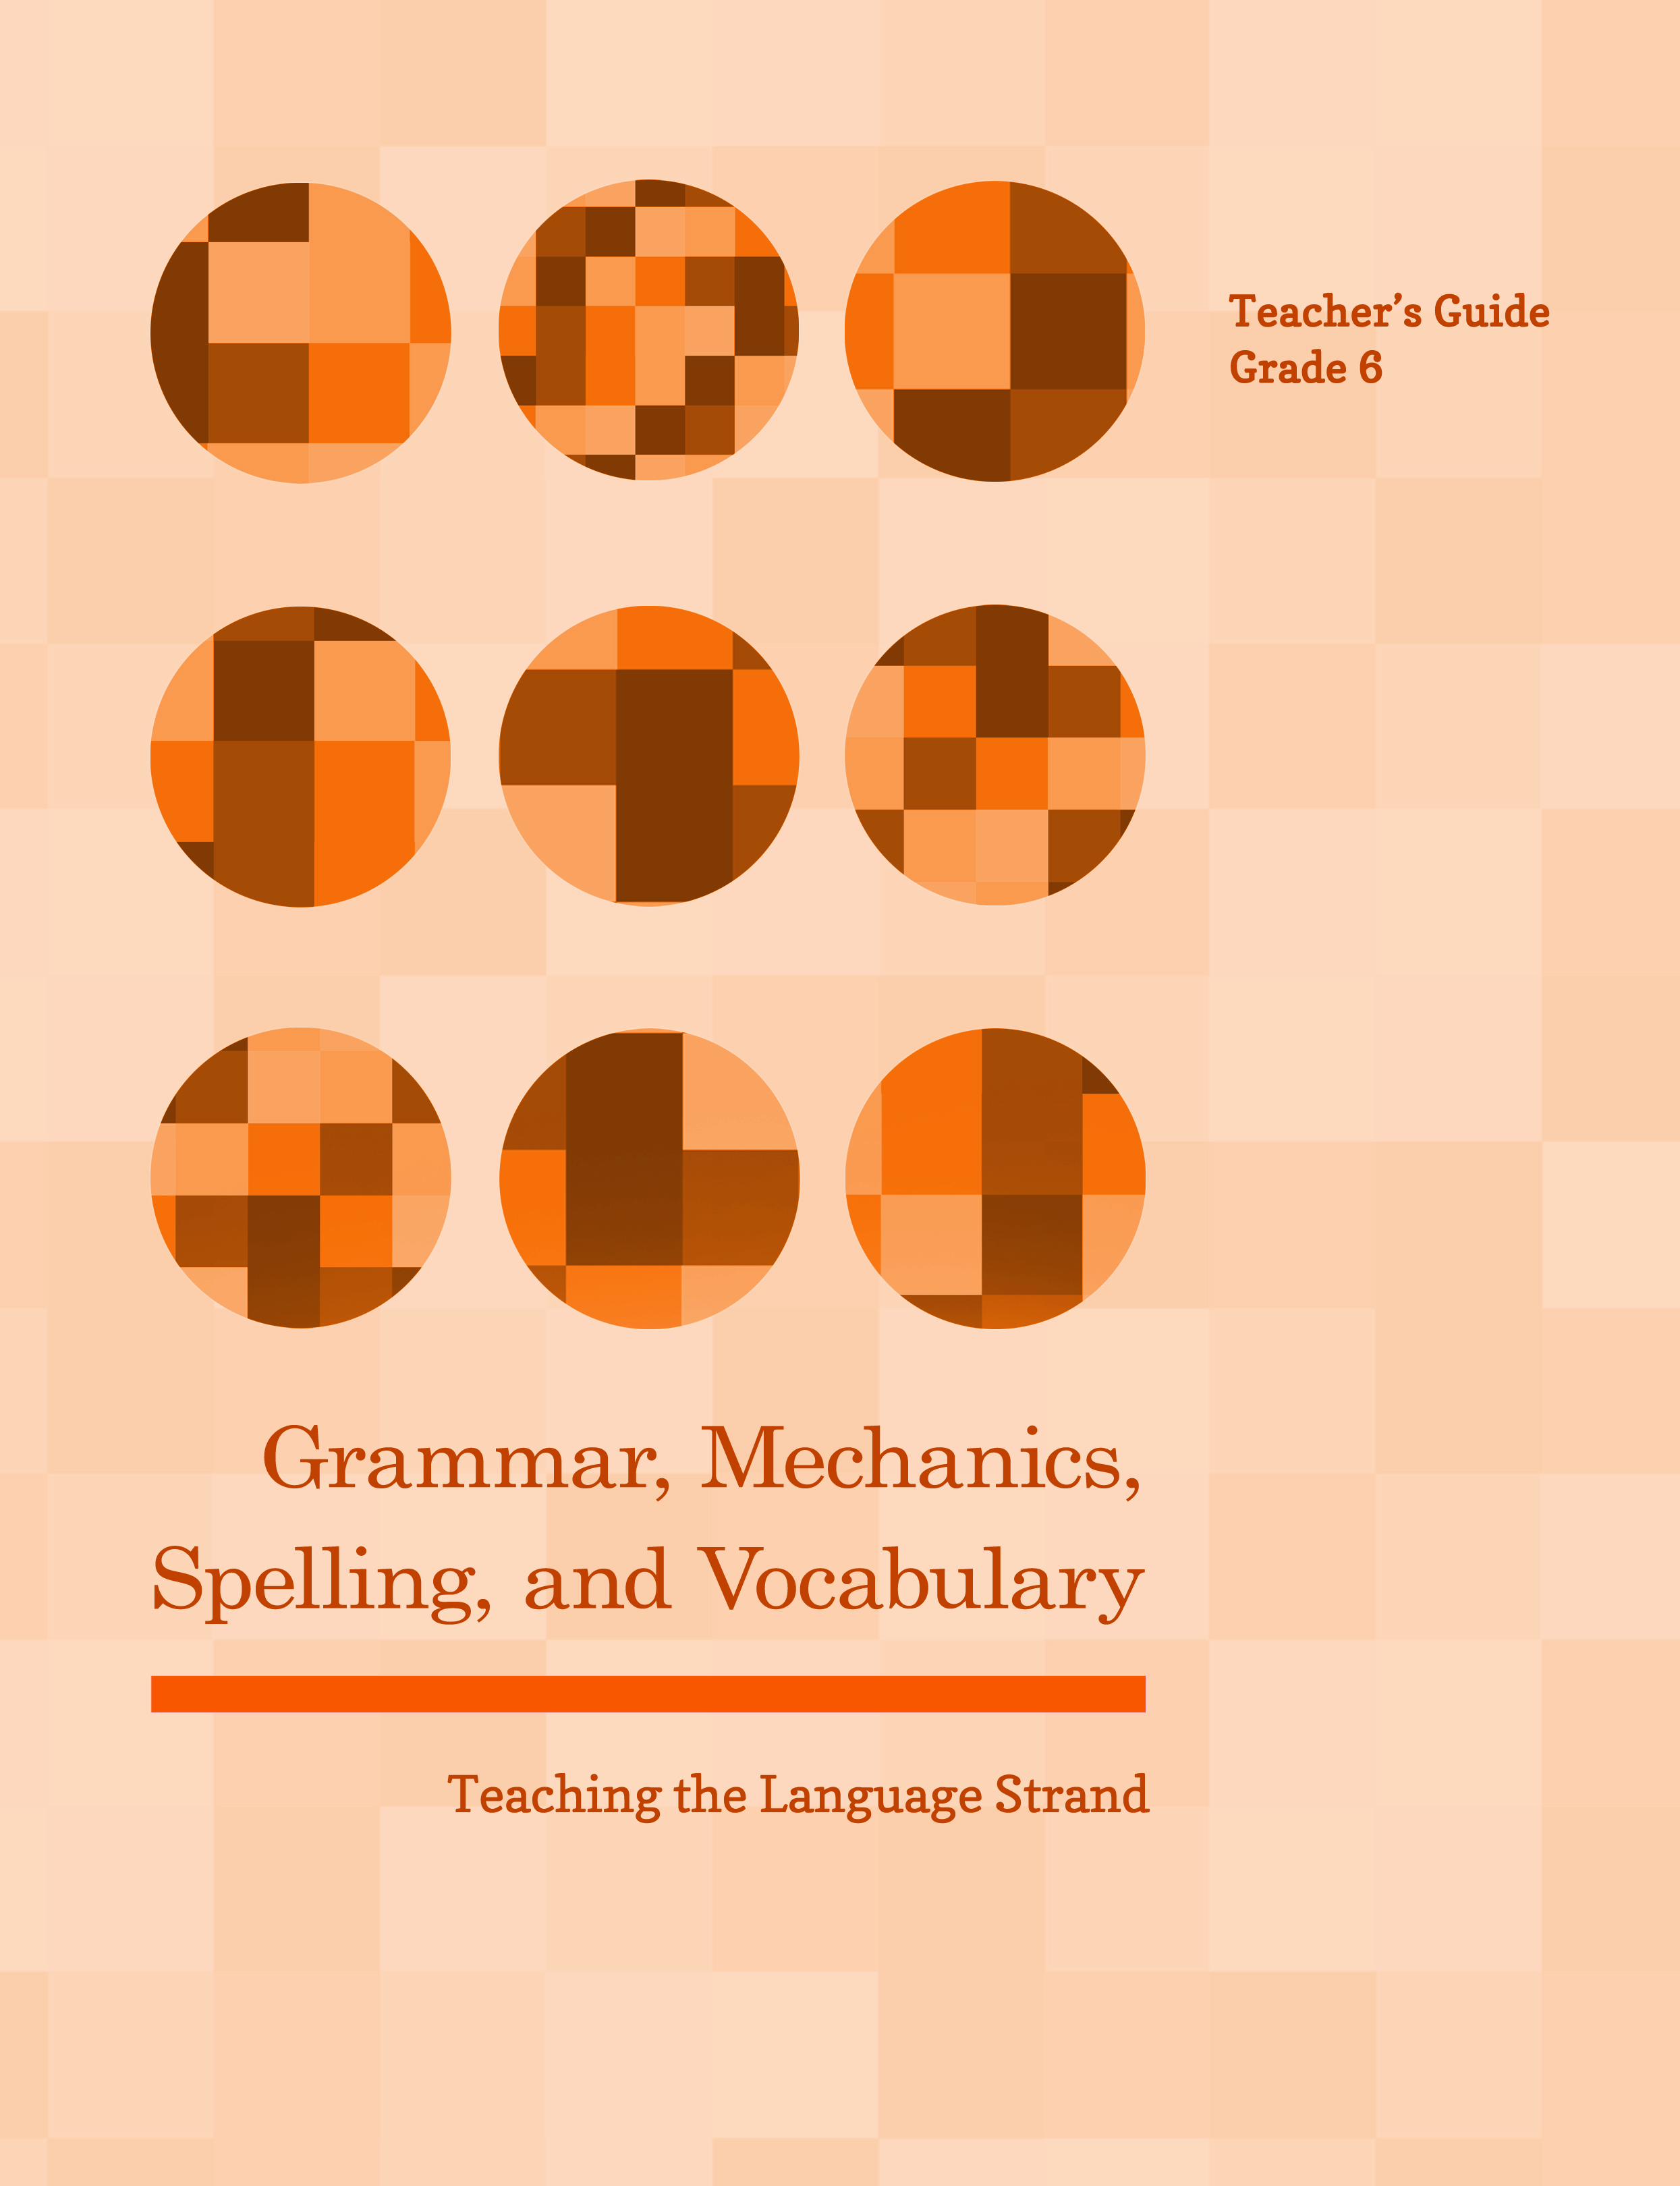 Grammar, Usage, Mechanics, Spelling, and Vocabulary (Teaching the Language Strand Grades 4-8)